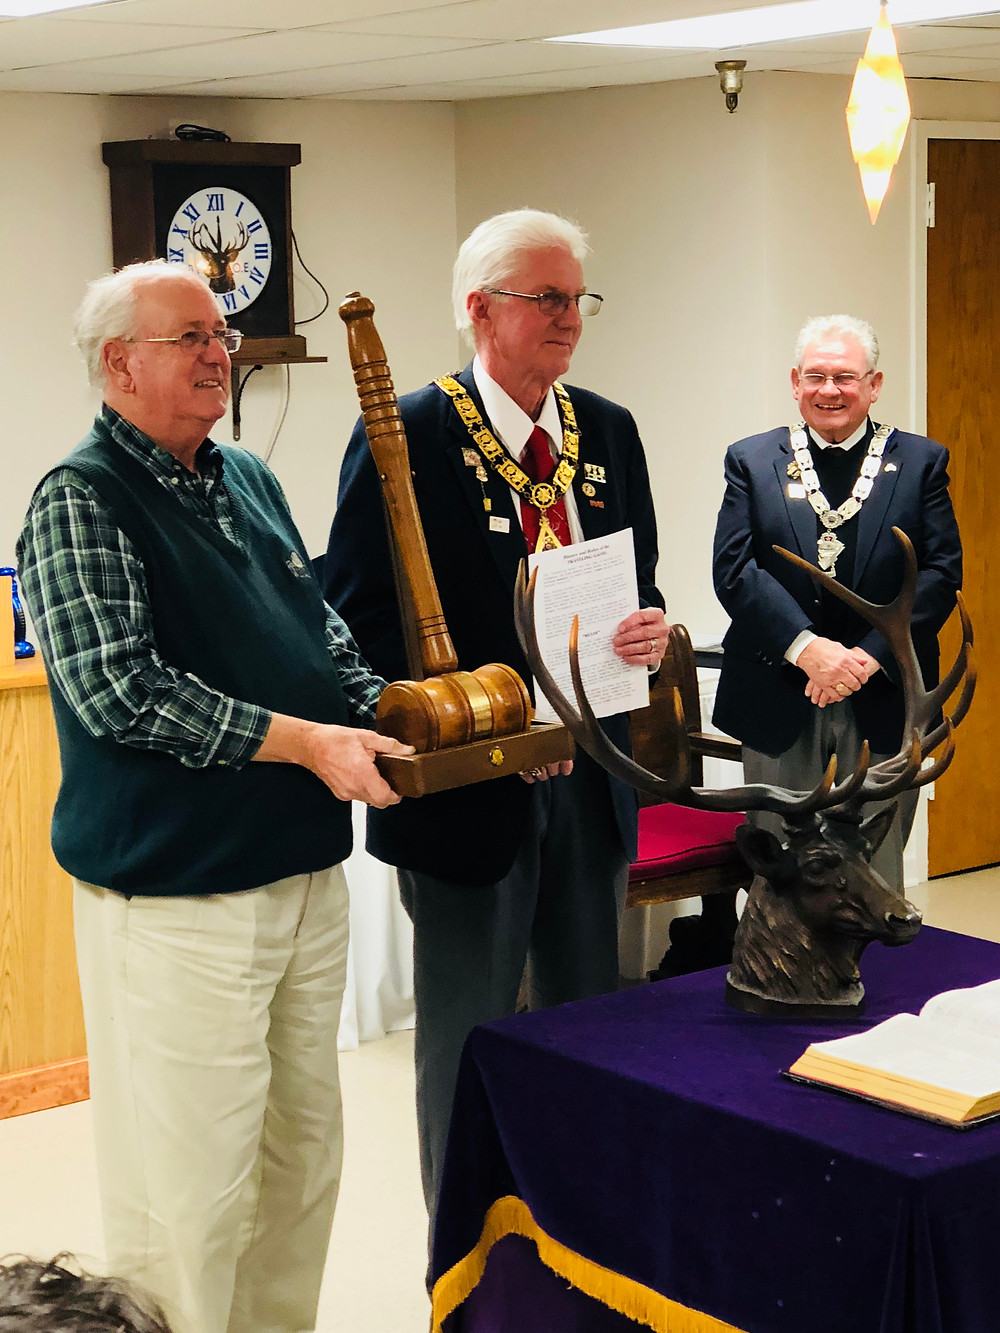 Picture: Broadneck Elks Founder and Past ER, Don Smith, captures the North Central District Elks Traveling Gavel from Glen Burnie ER, Rick Lawton.